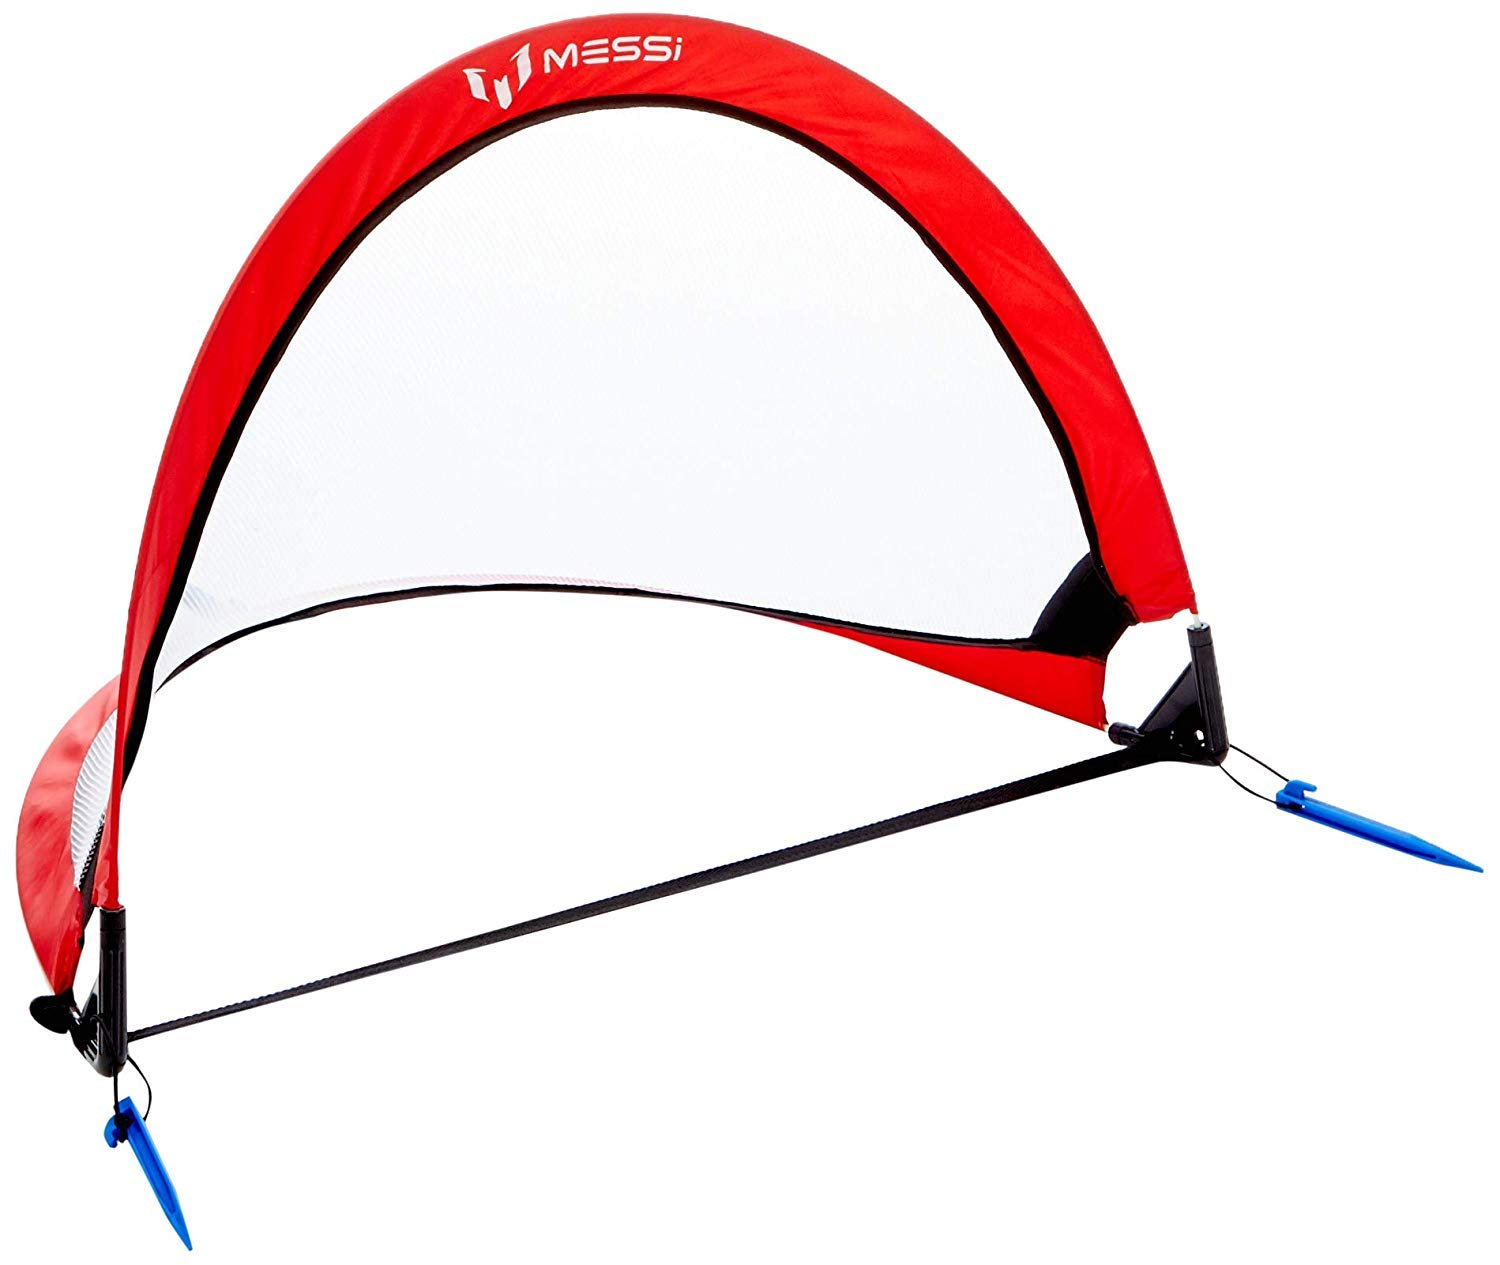 Messi Training System Pop Up Soccer Goal for Kids - 4ft Outdoor or Indoor Foldable Net - Youth Training Sports Equipment with Carrying Bag - Portable for Practice in Park, School, Backyard